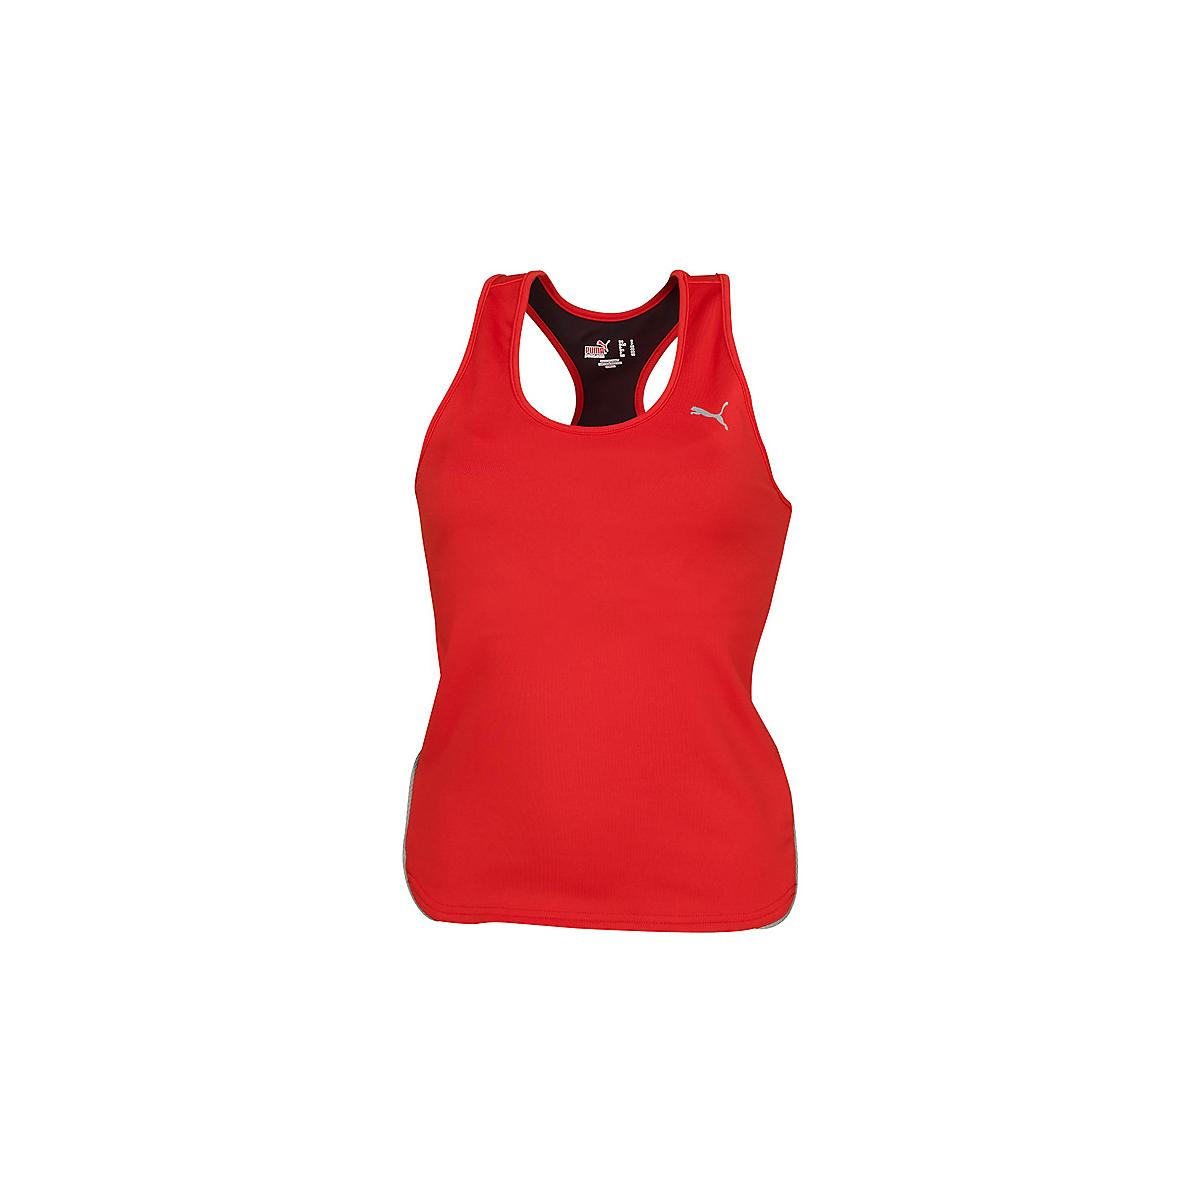 Womens PUMA Shimmel Tanks Technical Tops at Road Runner Sports